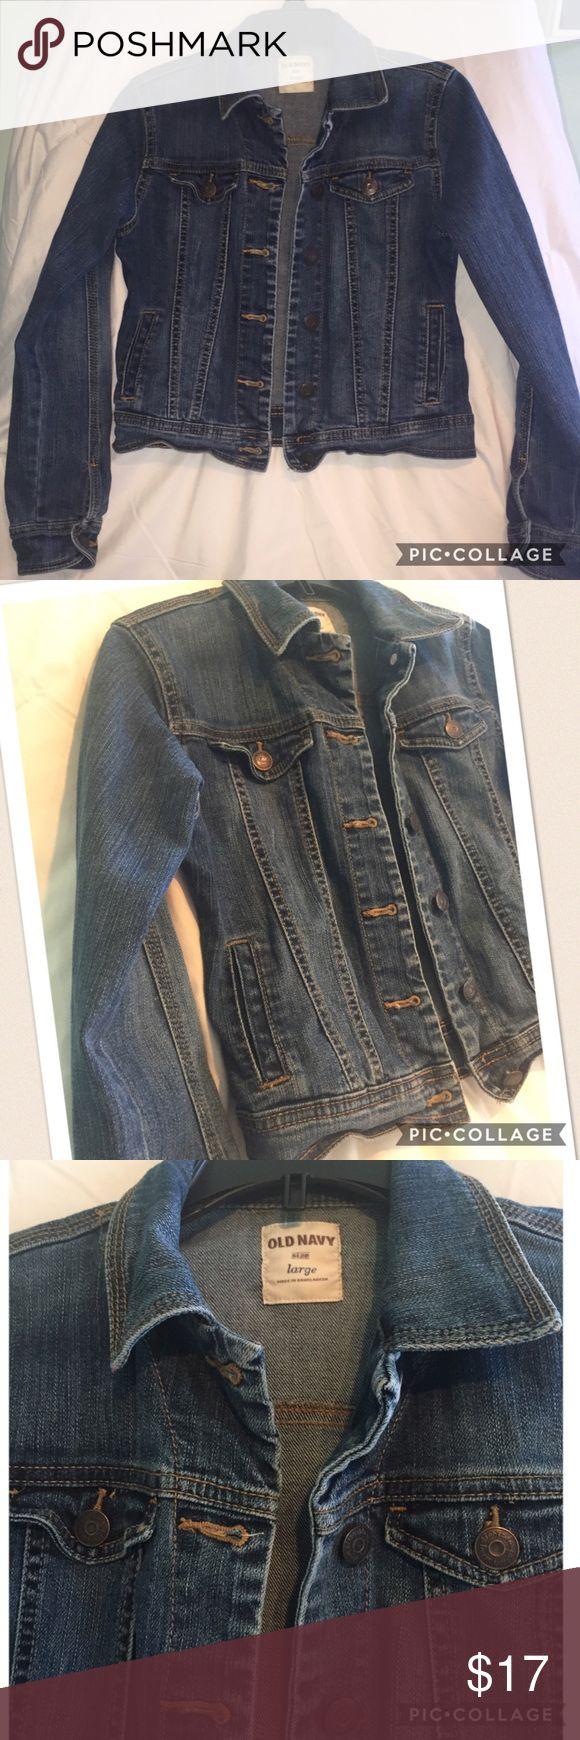 Old Navy jean jacket, size L 10/12 Old Navy classic jean jacket in great condition.  Only worn a couple times.  Size L 10/12. Old Navy Jackets & Coats Jean Jackets